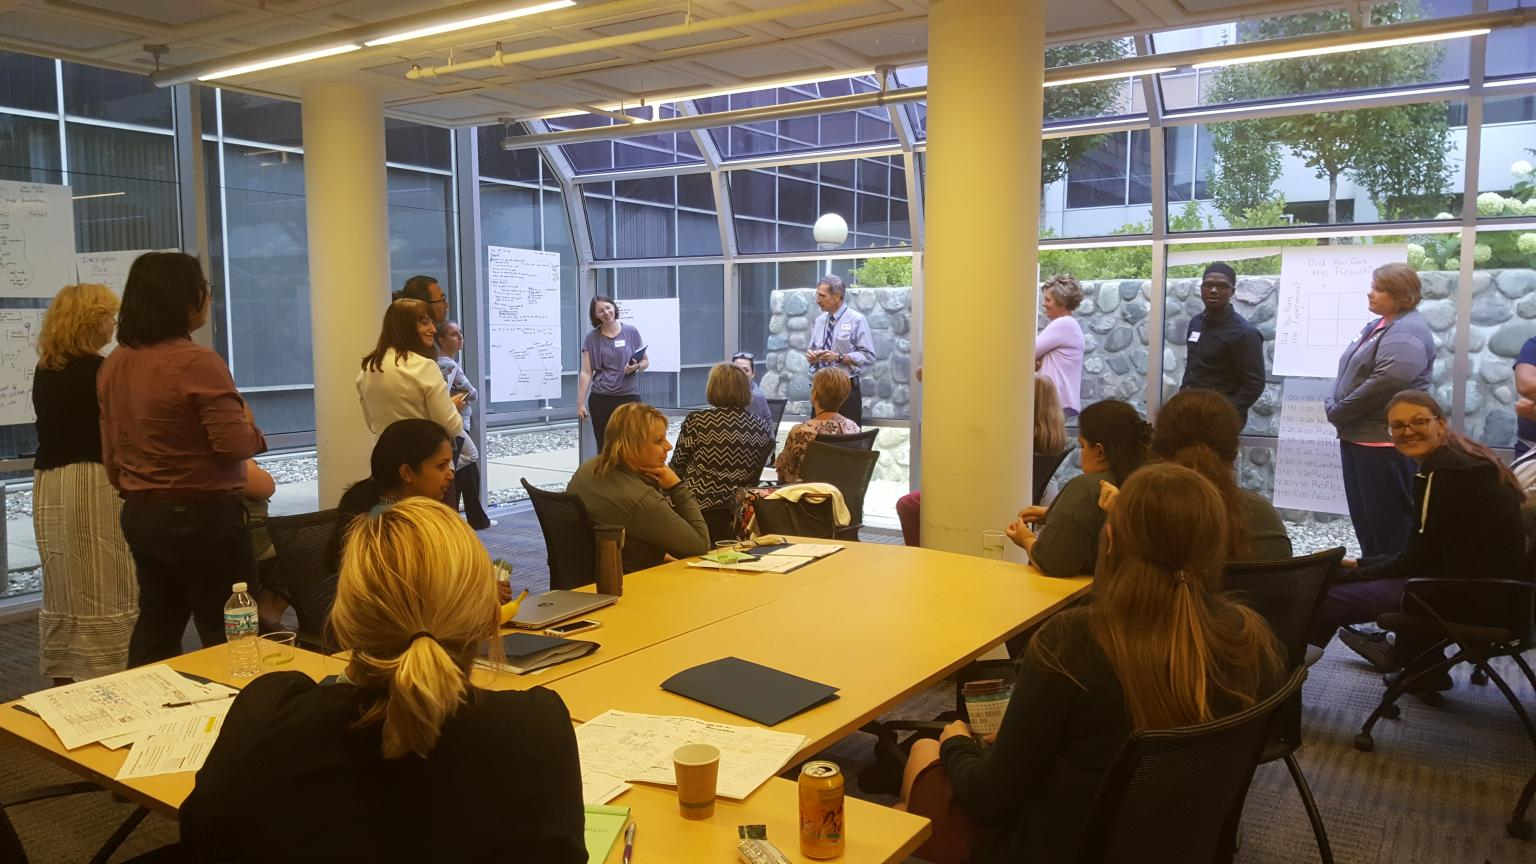 A few people sitting around a conference table and others standing in the background with large posters taped to the windows.